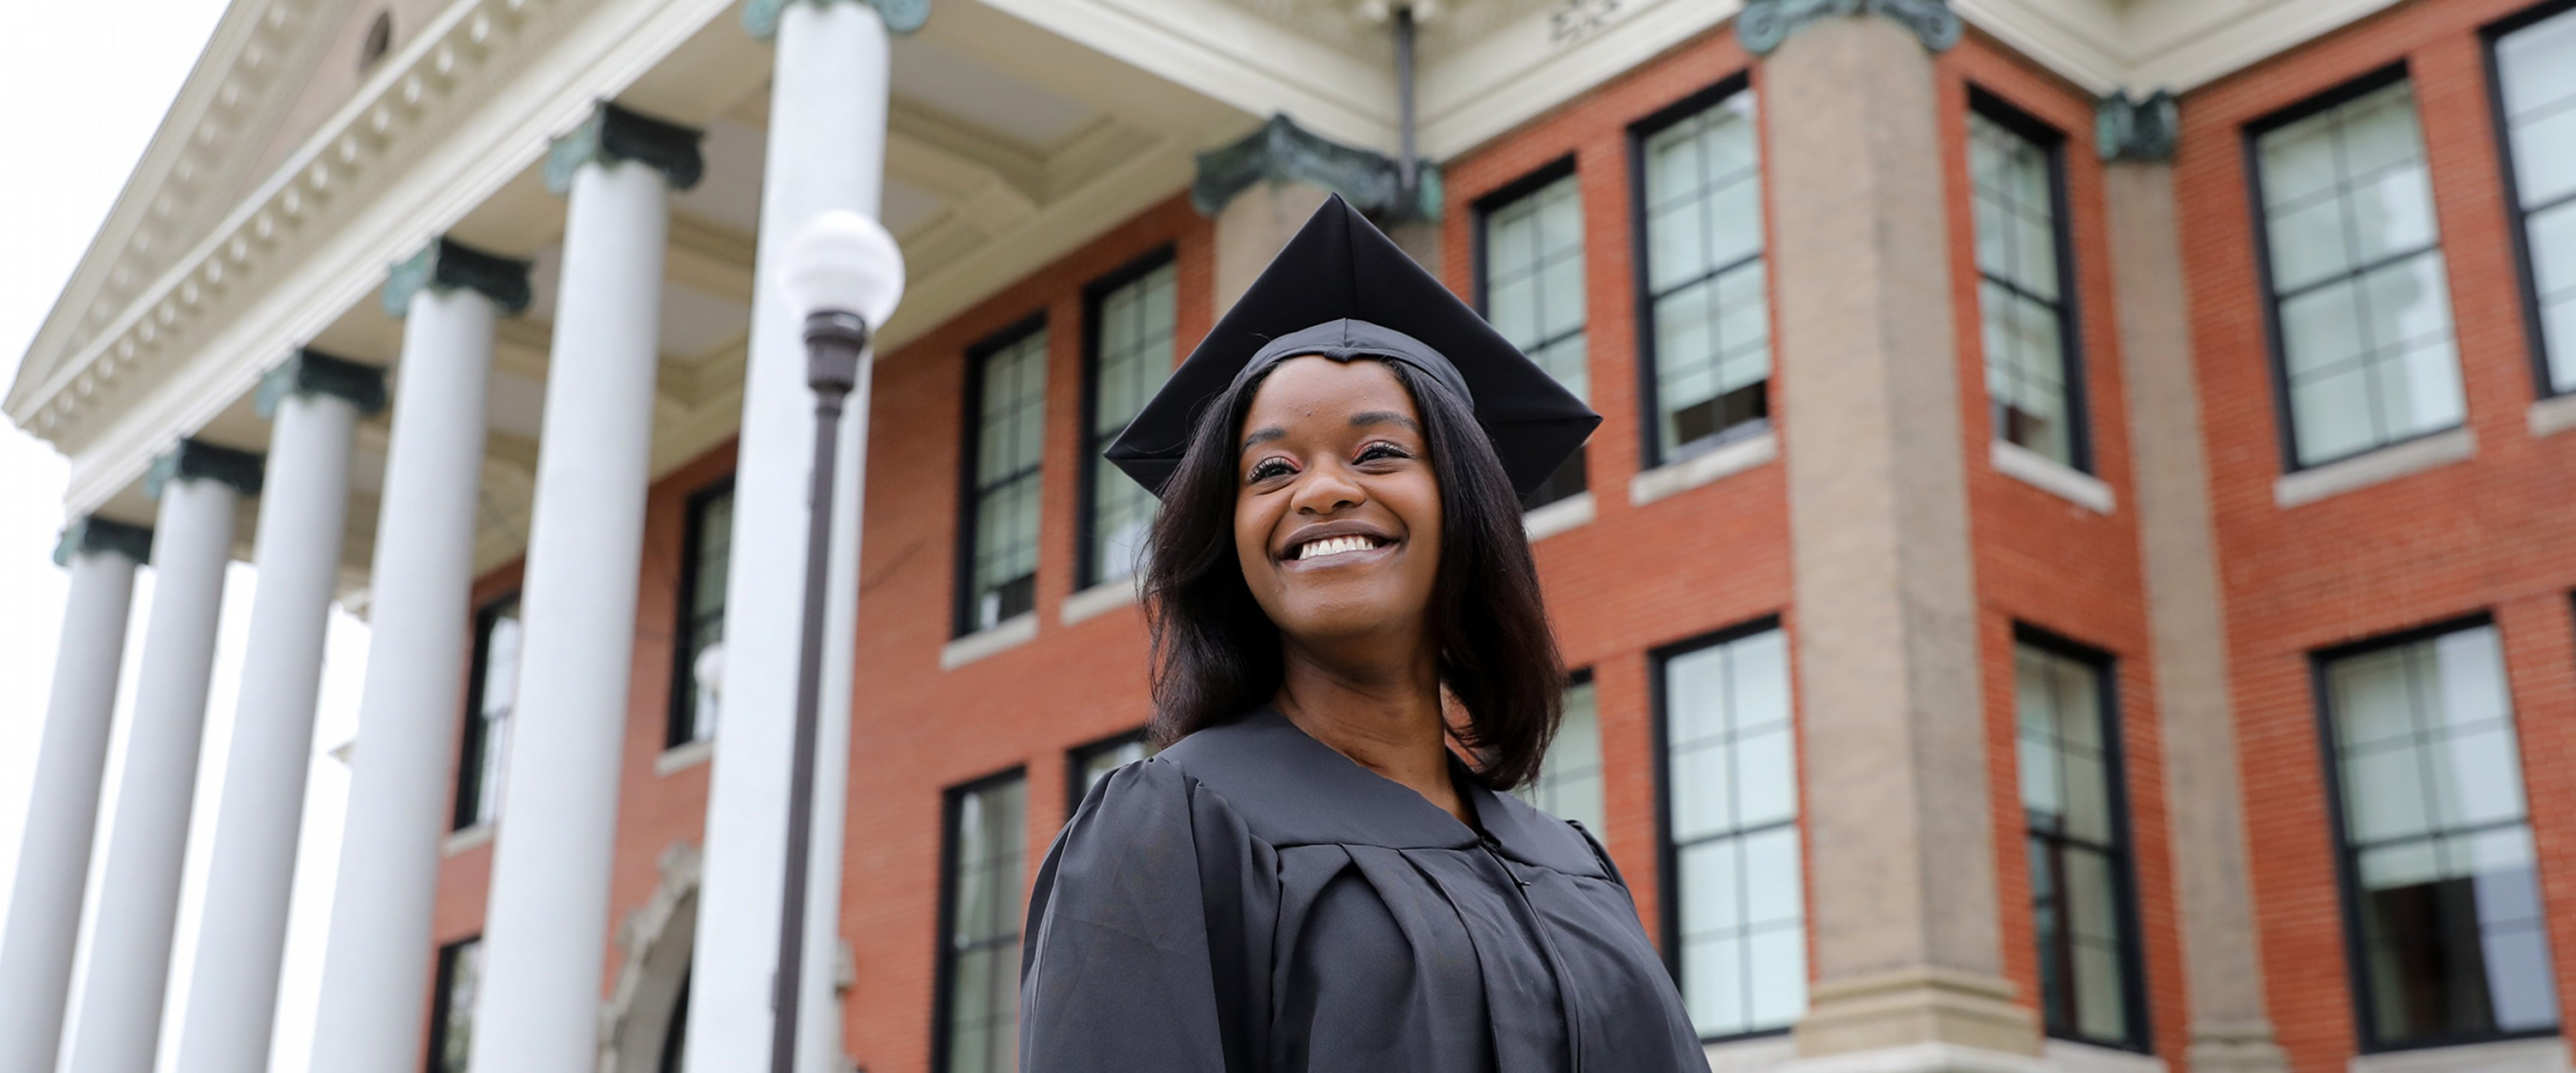 A smiling WMU graduate wearing her cap and gown